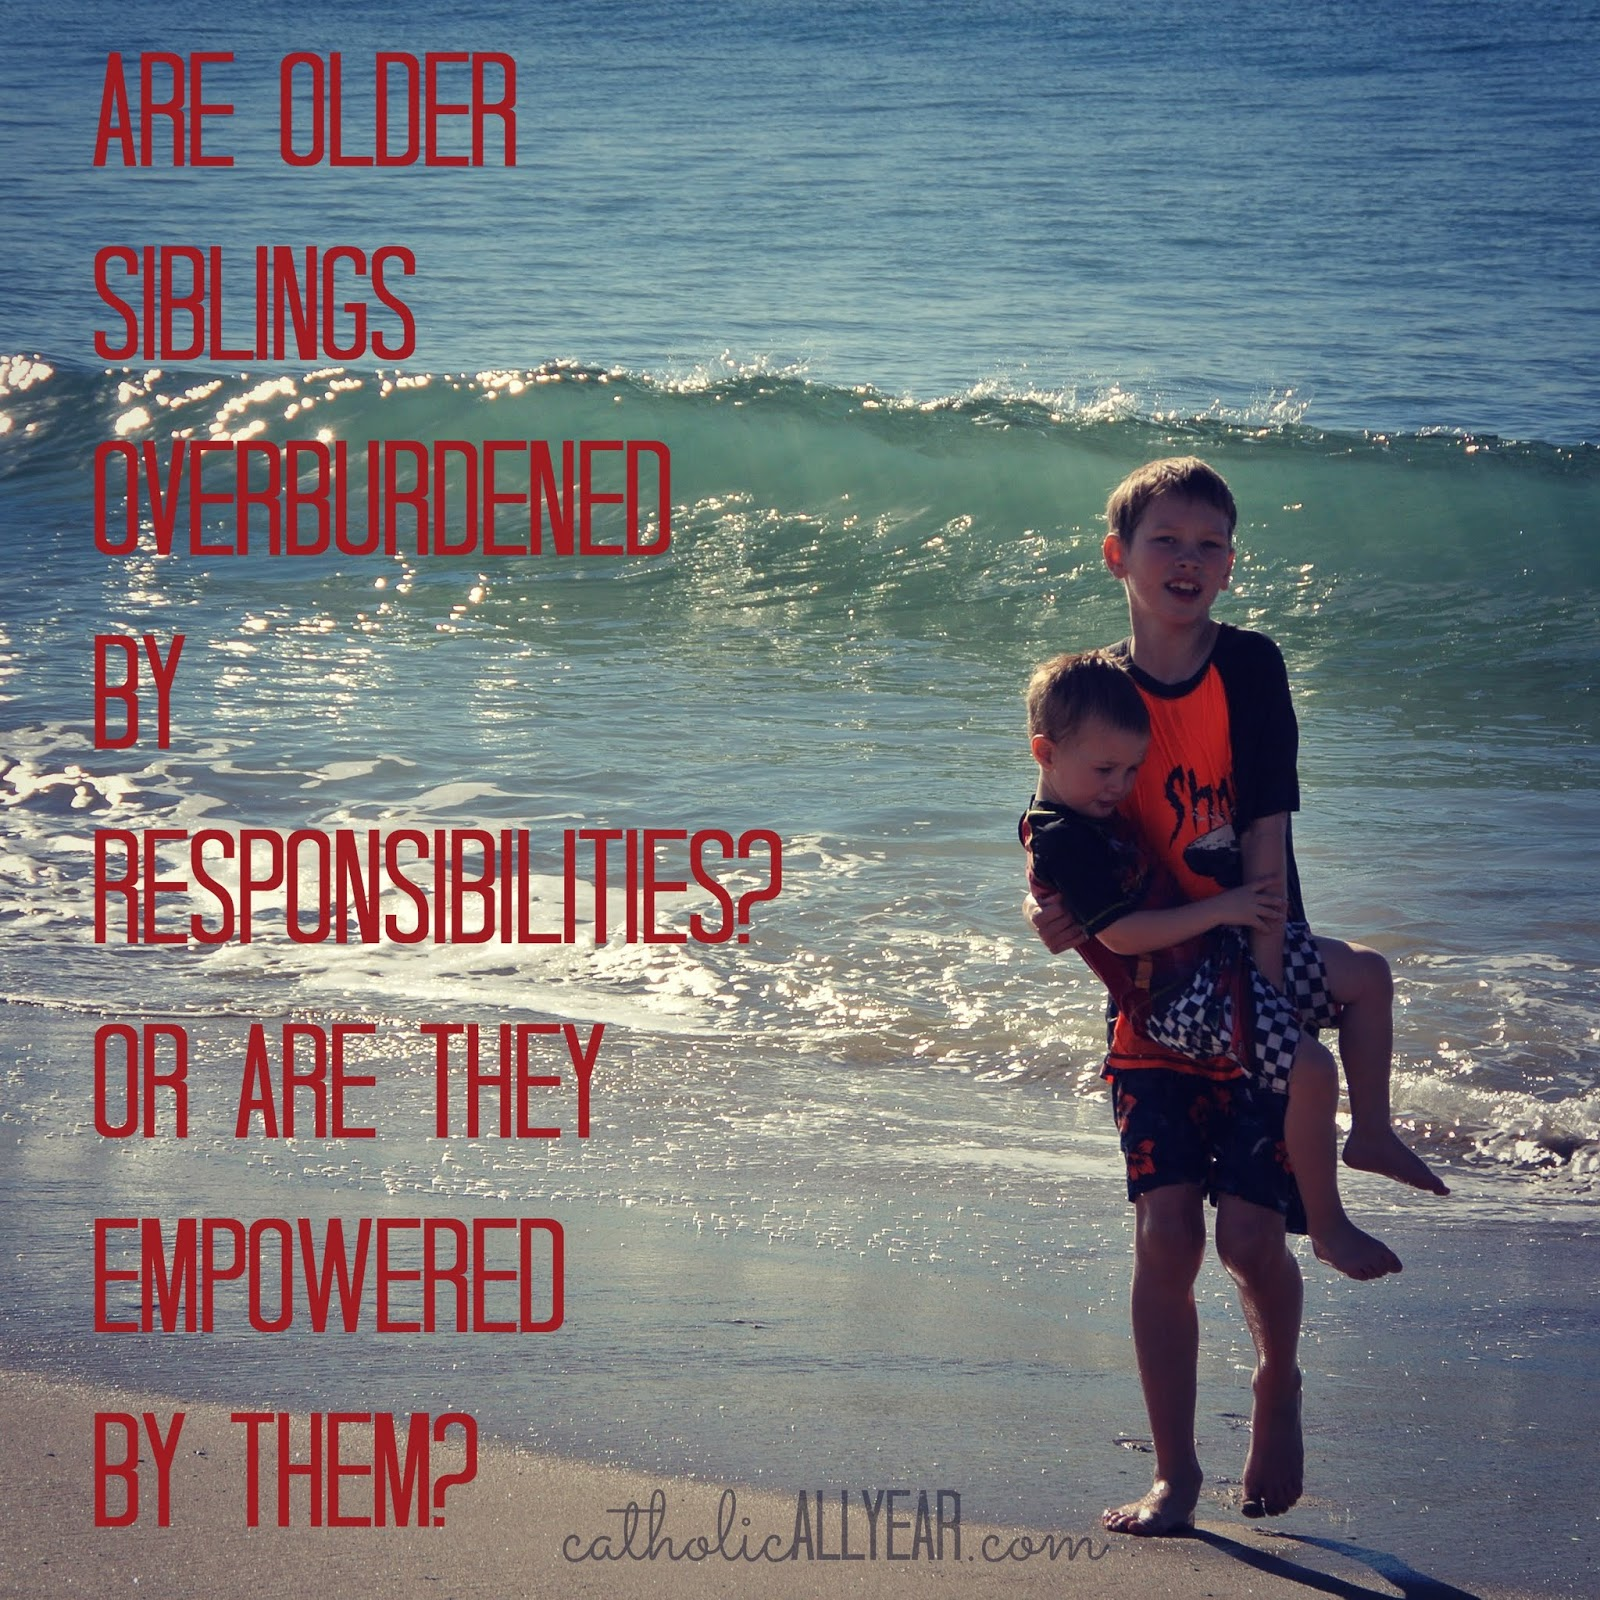 Are Older Siblings Overburdened by Responsibilities? Or Are They